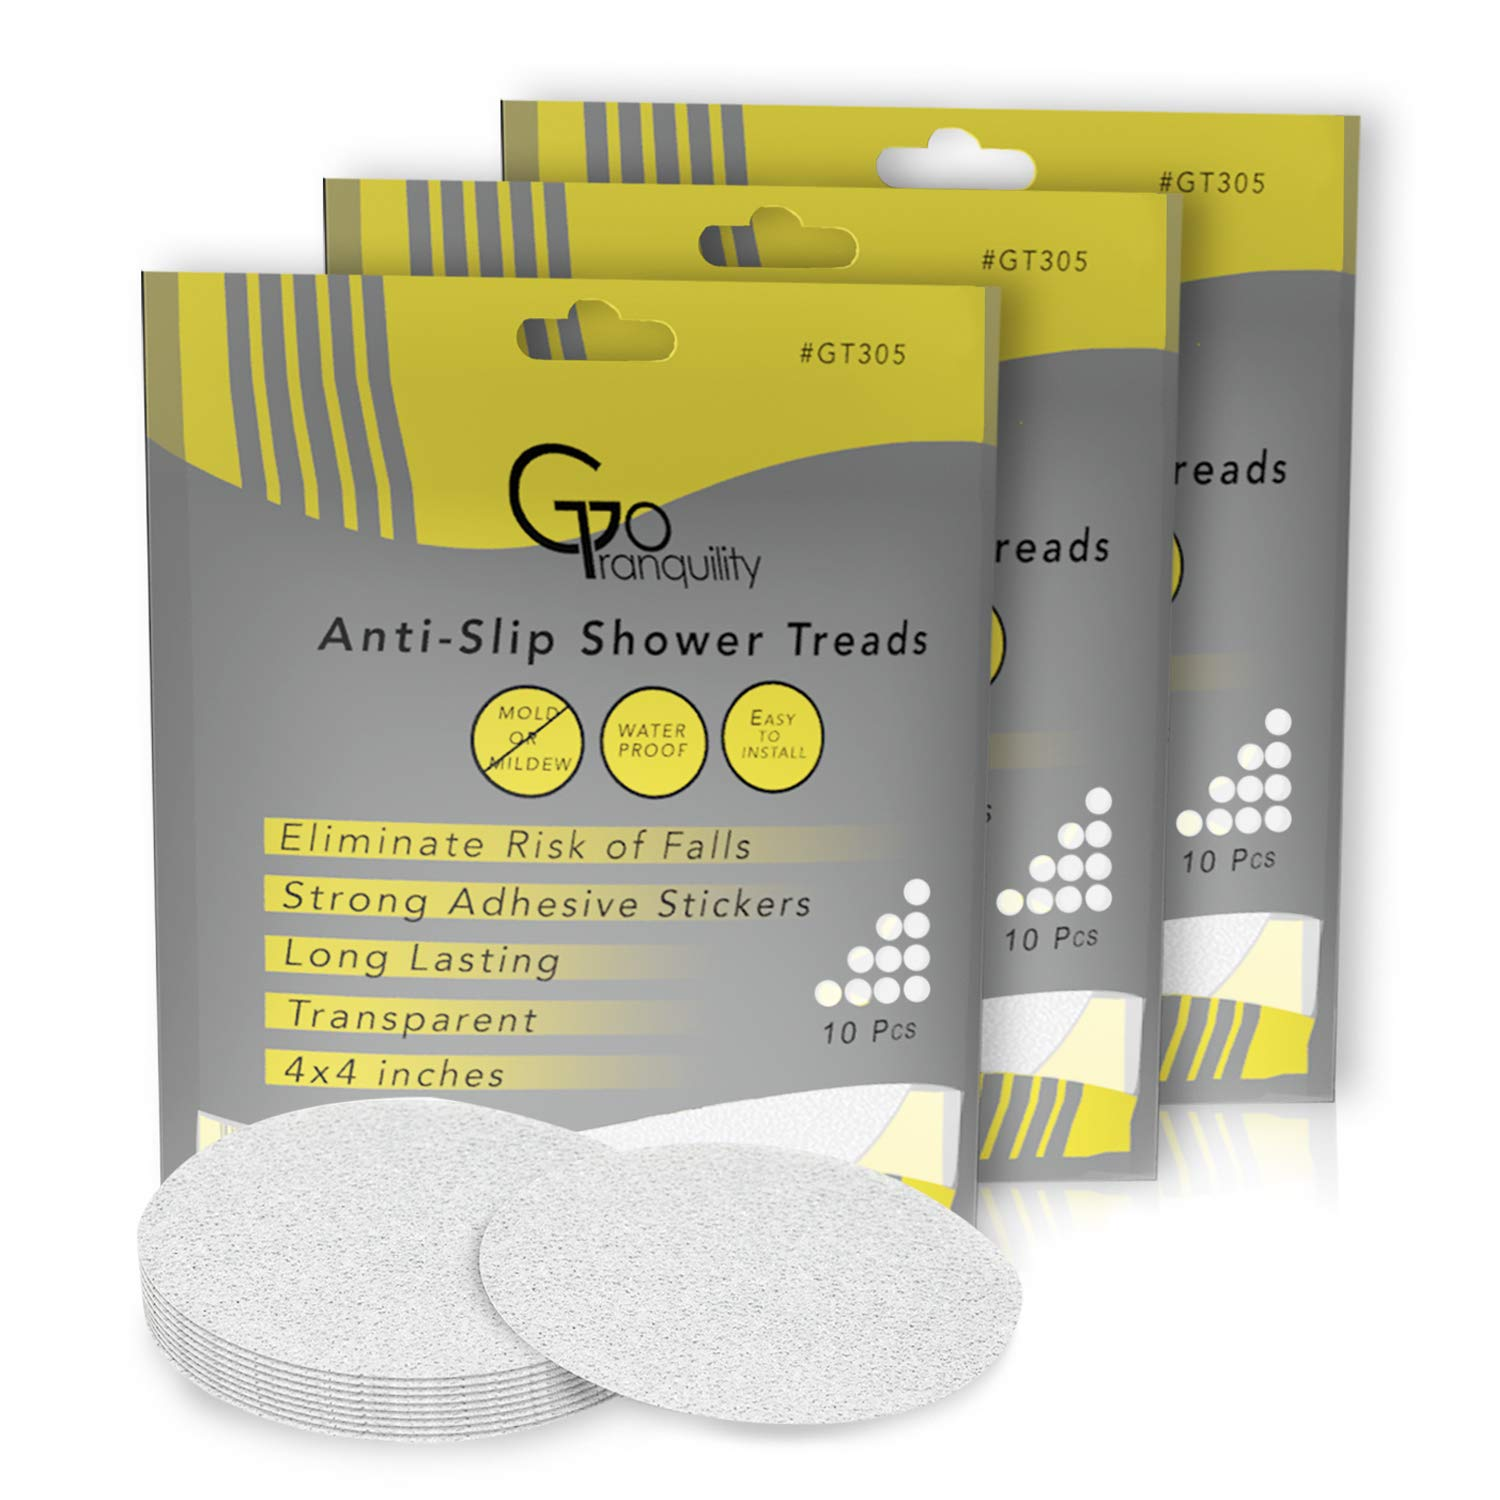 Non Slip Safety Shower Grip Treads To Prevent Slippery Surfaces In The Bathtub 10 Clear PEVA Discs Anti-Slip Stickers GoTranquility